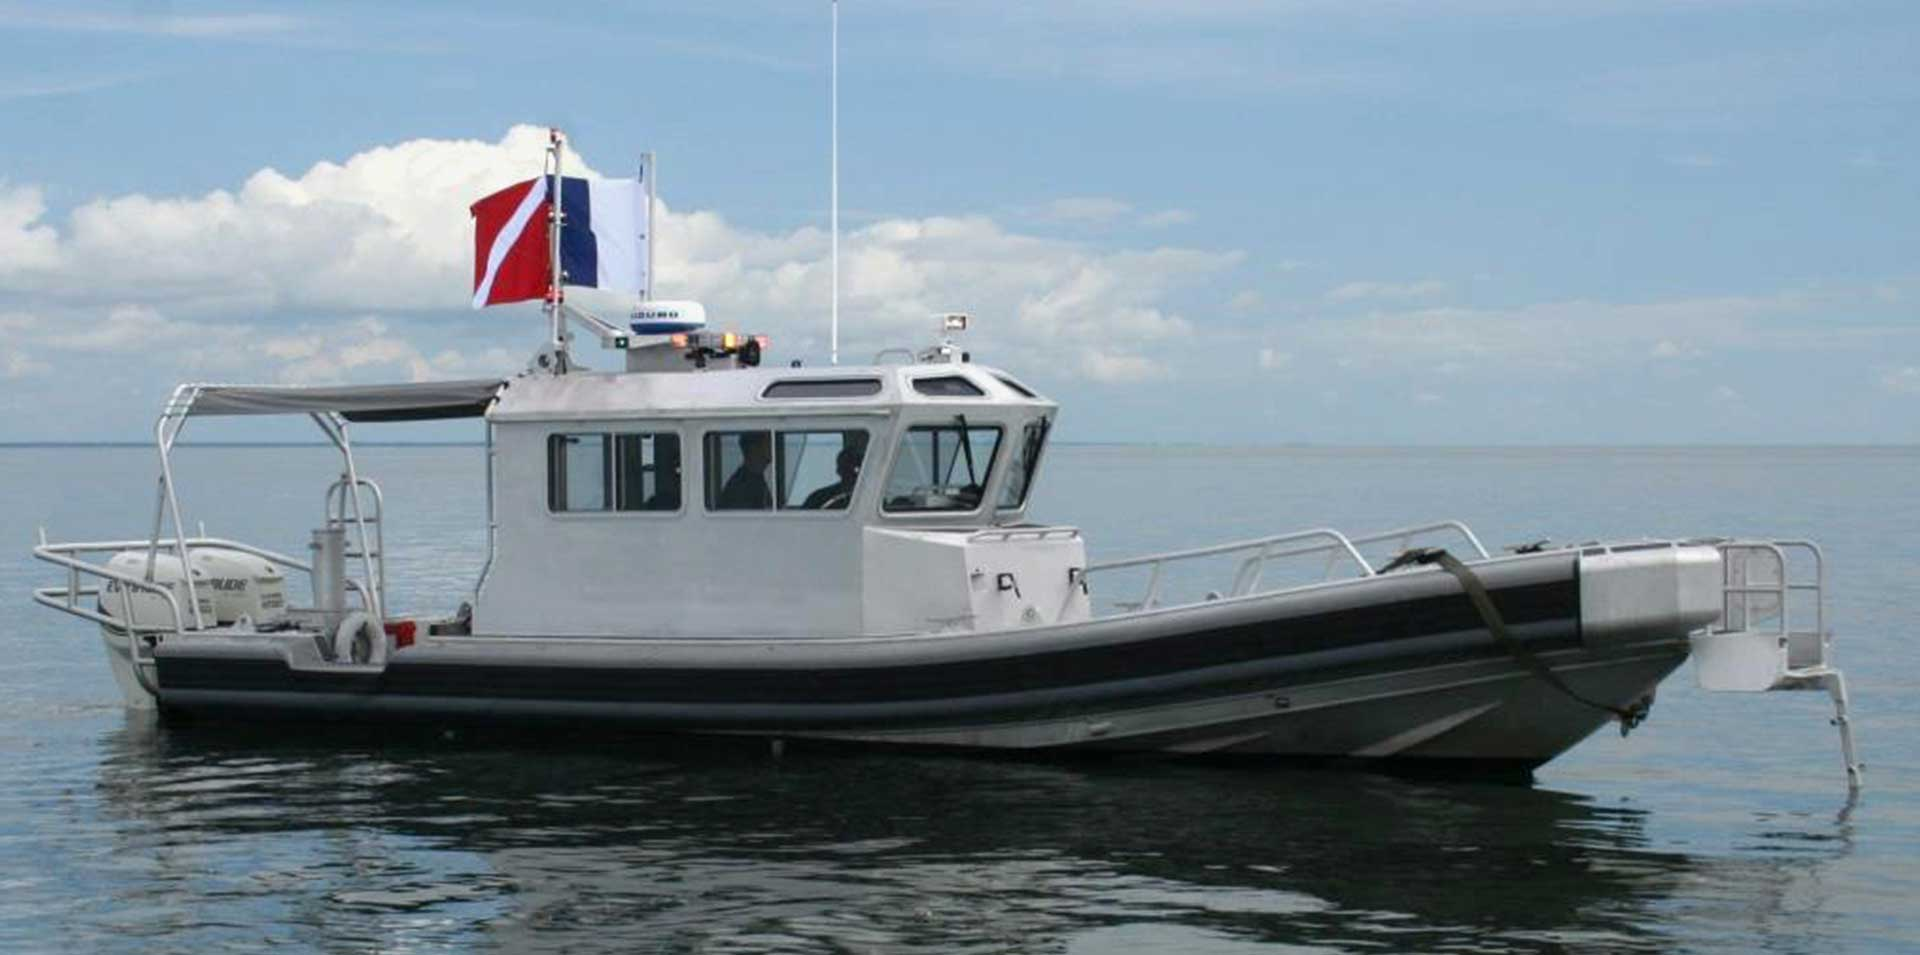 Silver Ships Ambar Series AM 1100 patrol vessel with full pilothouse